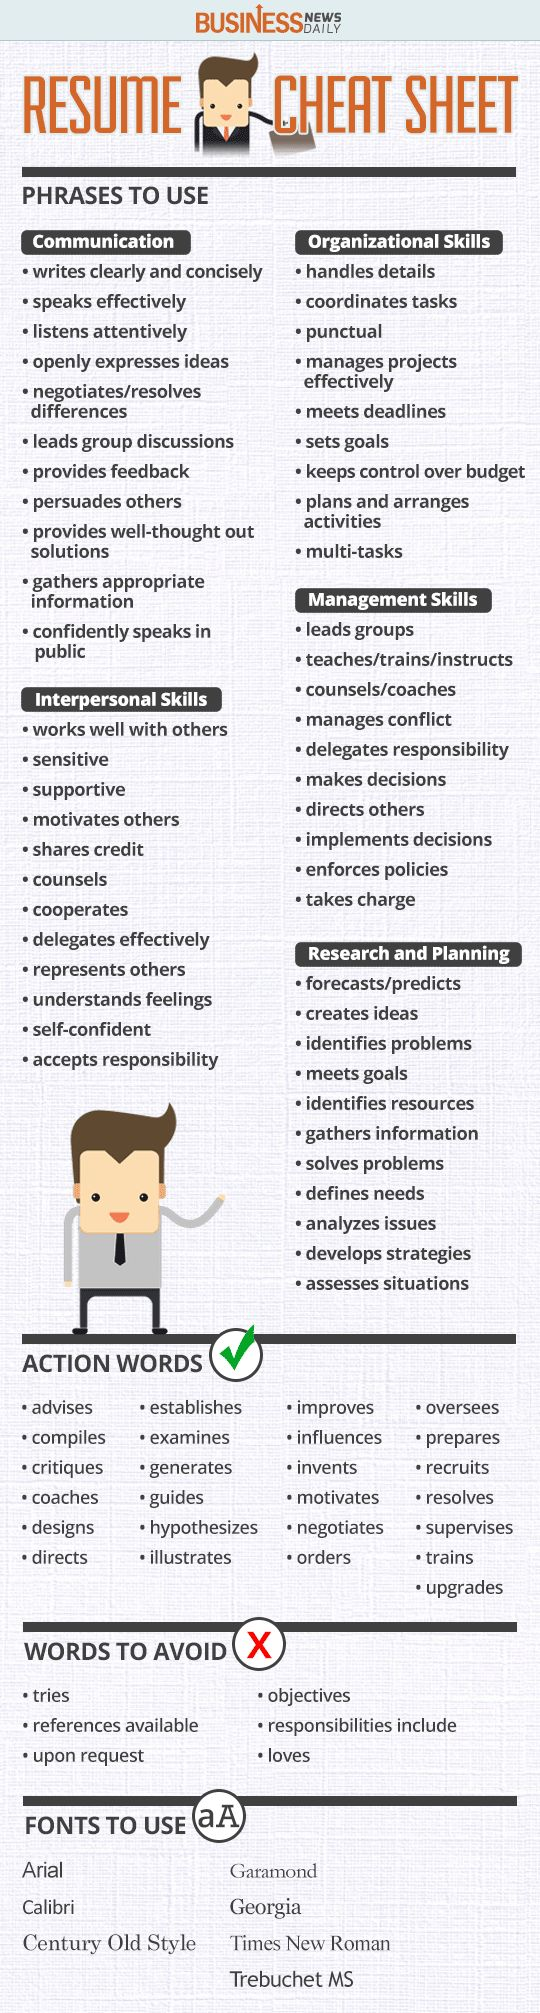 Opposenewapstandardsus  Stunning  Ideas About Resume On Pinterest  Cv Format Resume Cv And  With Heavenly Resume Cheat Sheet Infographic Andrews Almost Done With A Complete Unit On Employment Which With Nice Waitressing Resume Also Resume Template Samples In Addition Template For Resume Free And Sample Resumes For Administrative Assistant As Well As How To Creat A Resume Additionally Actually Free Resume Builder From Pinterestcom With Opposenewapstandardsus  Heavenly  Ideas About Resume On Pinterest  Cv Format Resume Cv And  With Nice Resume Cheat Sheet Infographic Andrews Almost Done With A Complete Unit On Employment Which And Stunning Waitressing Resume Also Resume Template Samples In Addition Template For Resume Free From Pinterestcom